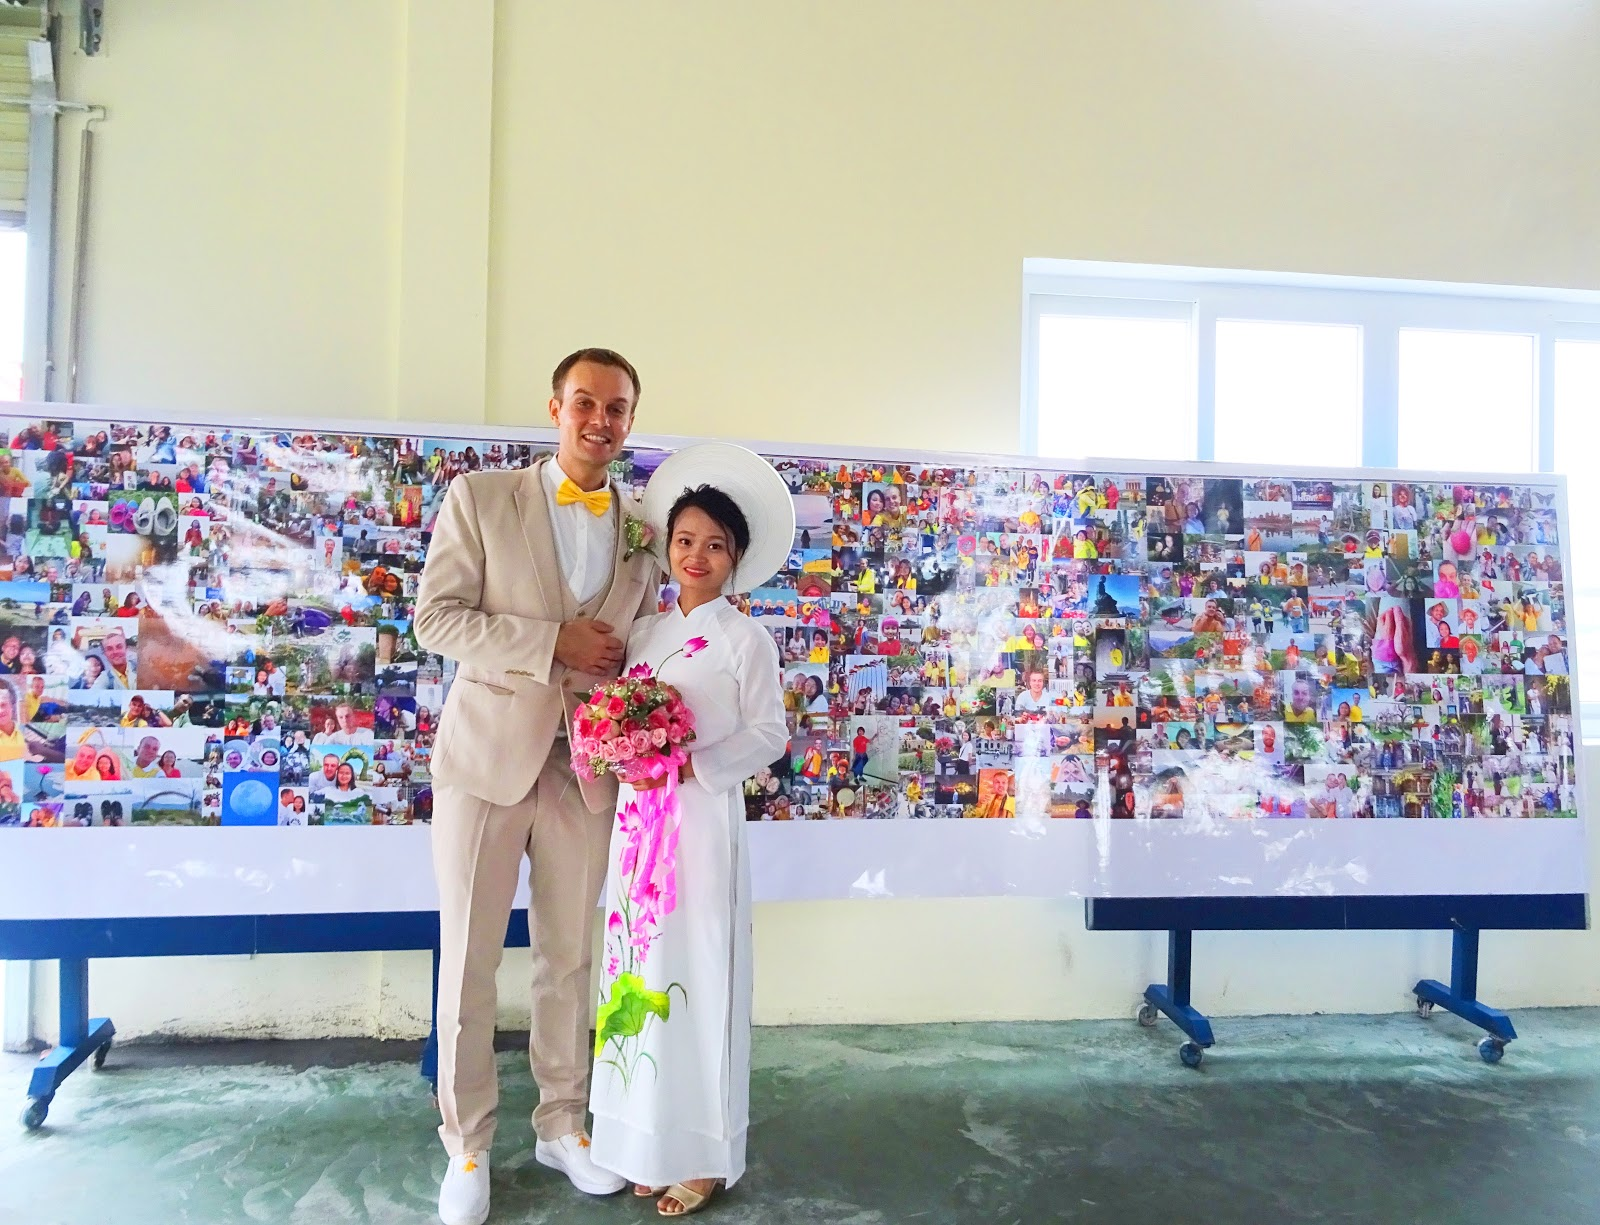 Nguyen Thi Sam and Meigo Mark at their wedding in a photo provided by the couple